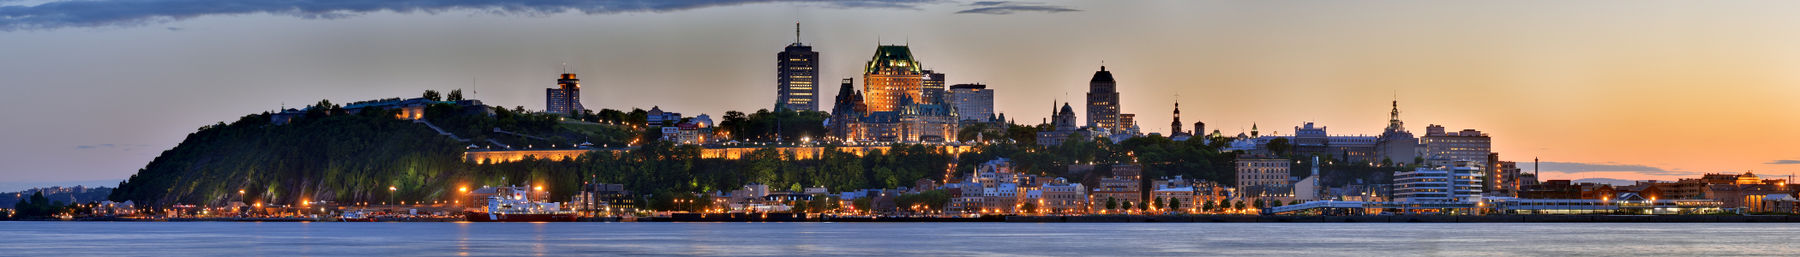 Ville de Québec panorama, viewed from Lévis